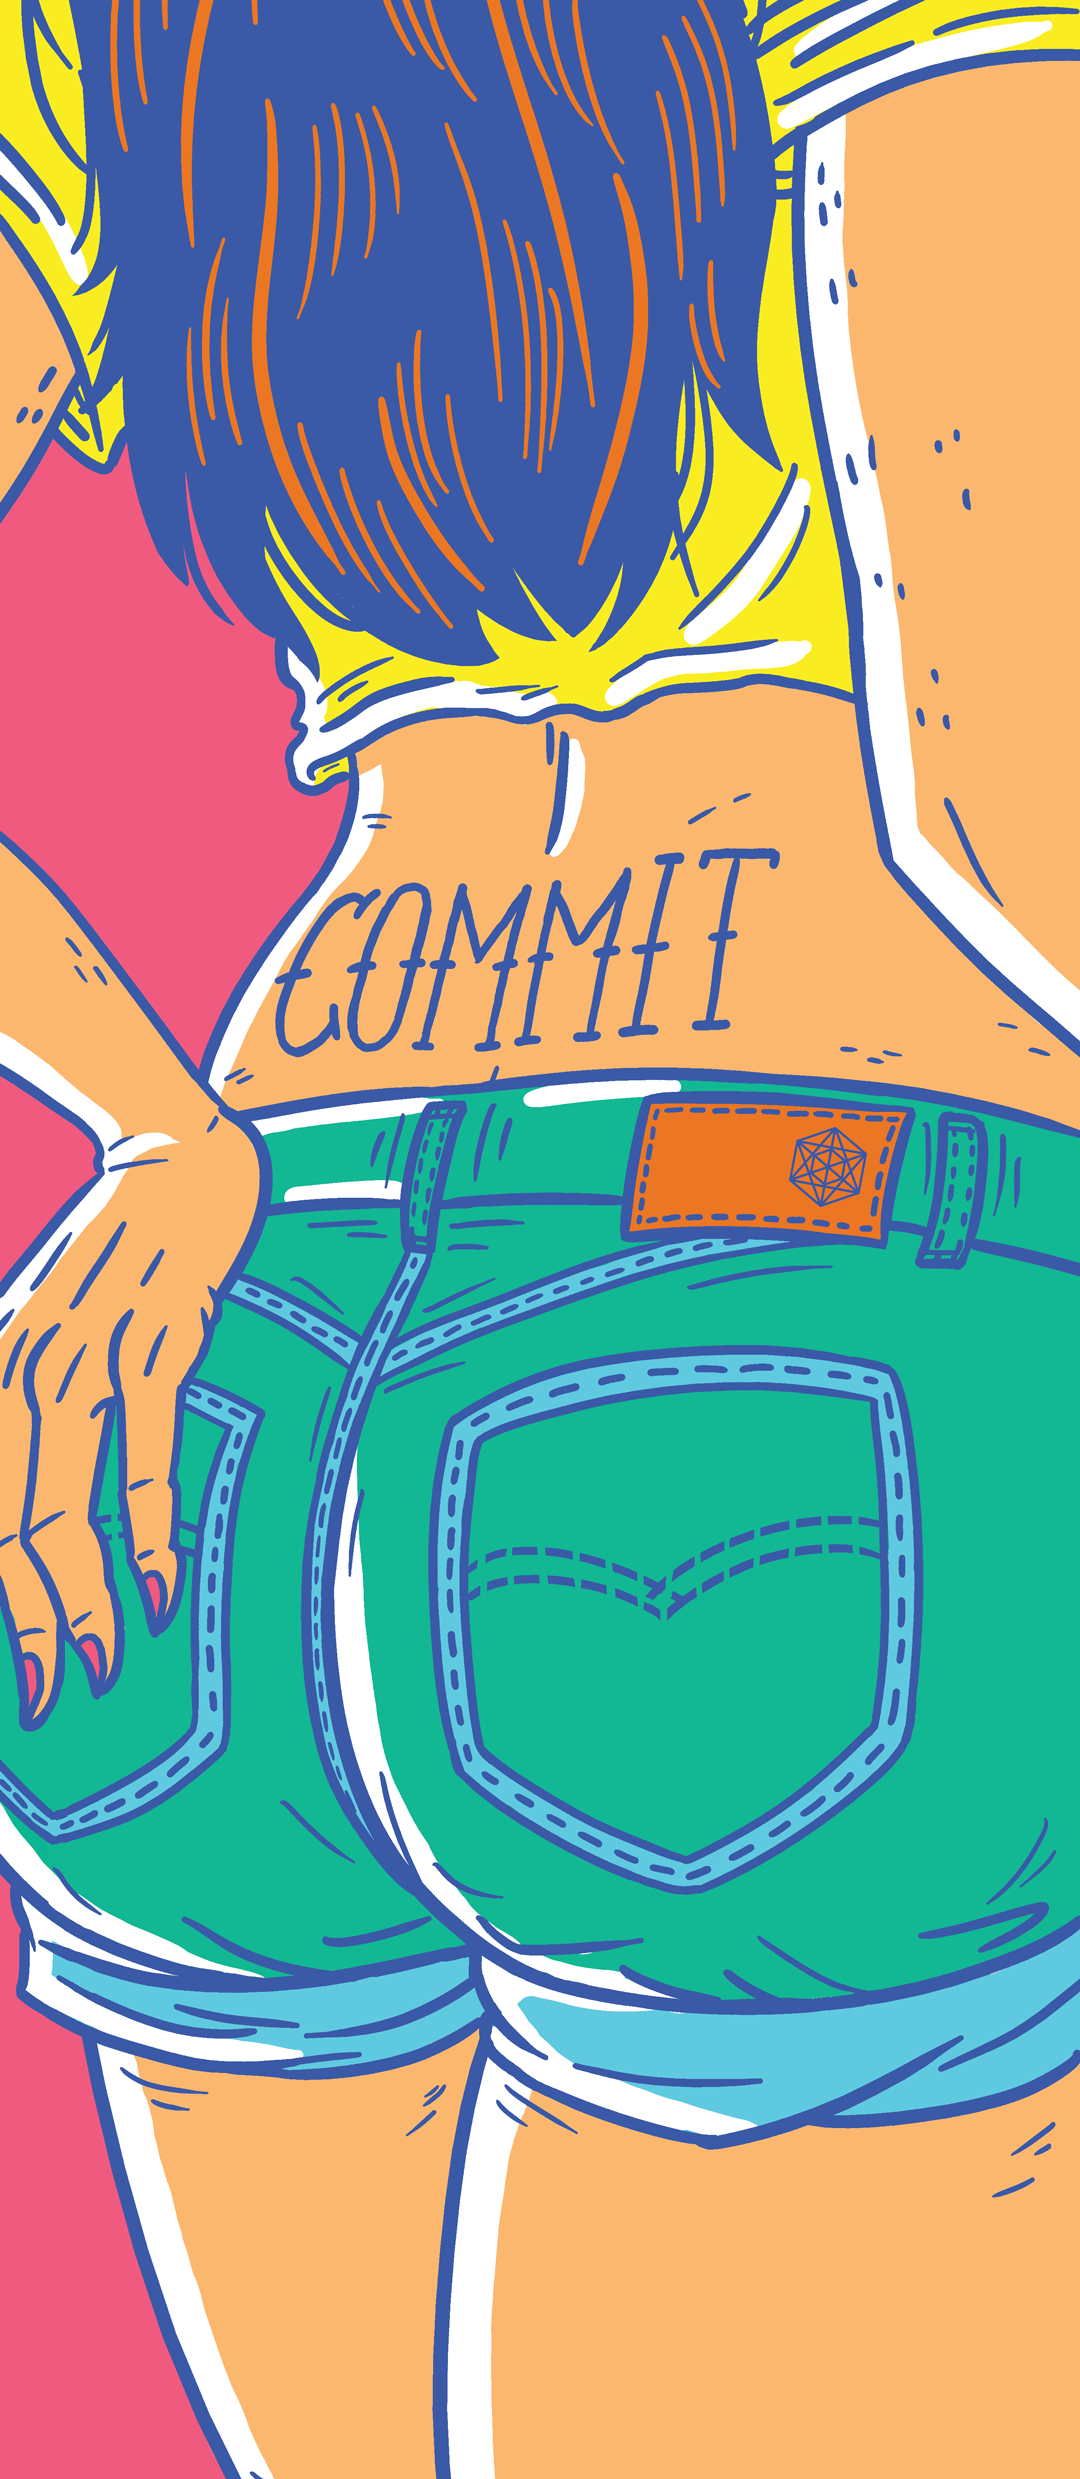 Commit Deck